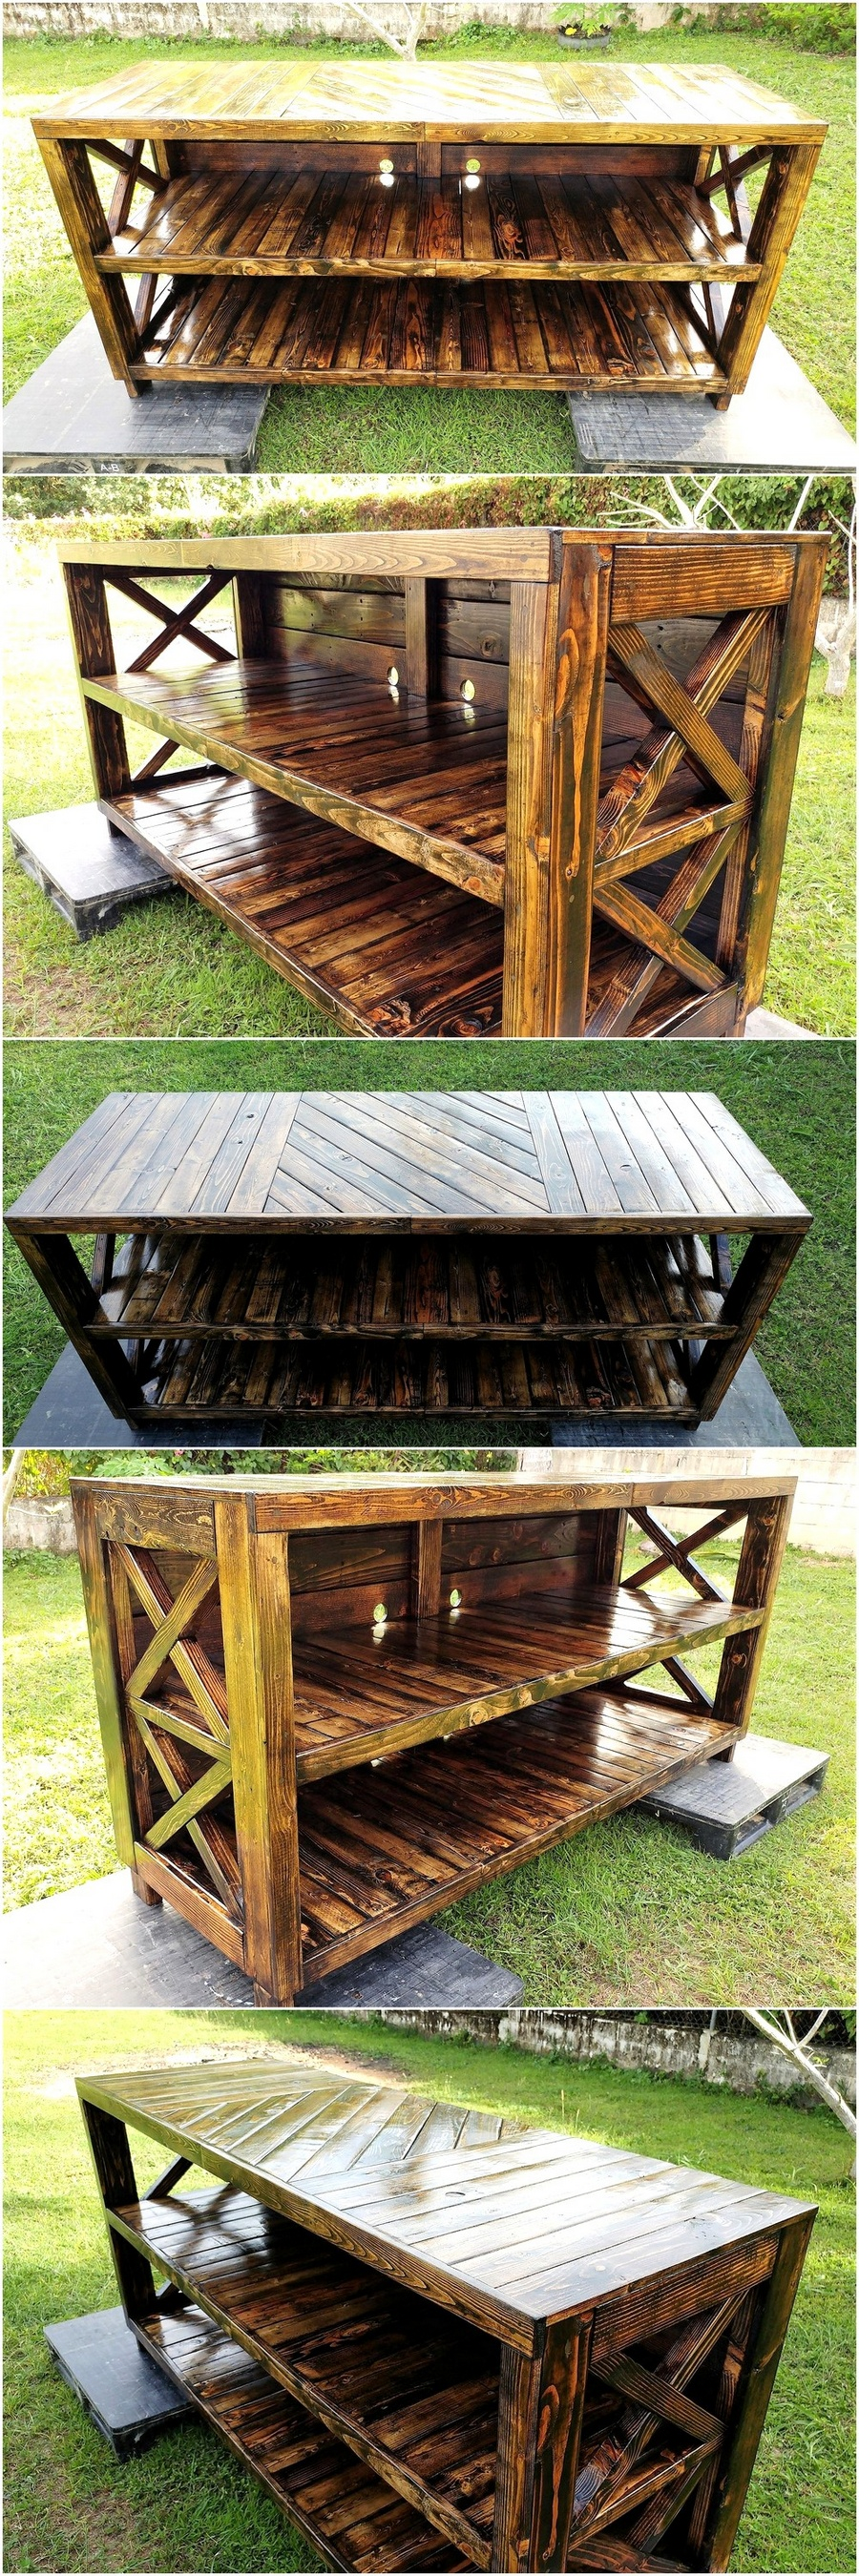 Recycled Wooden Pallets Entertainment Center